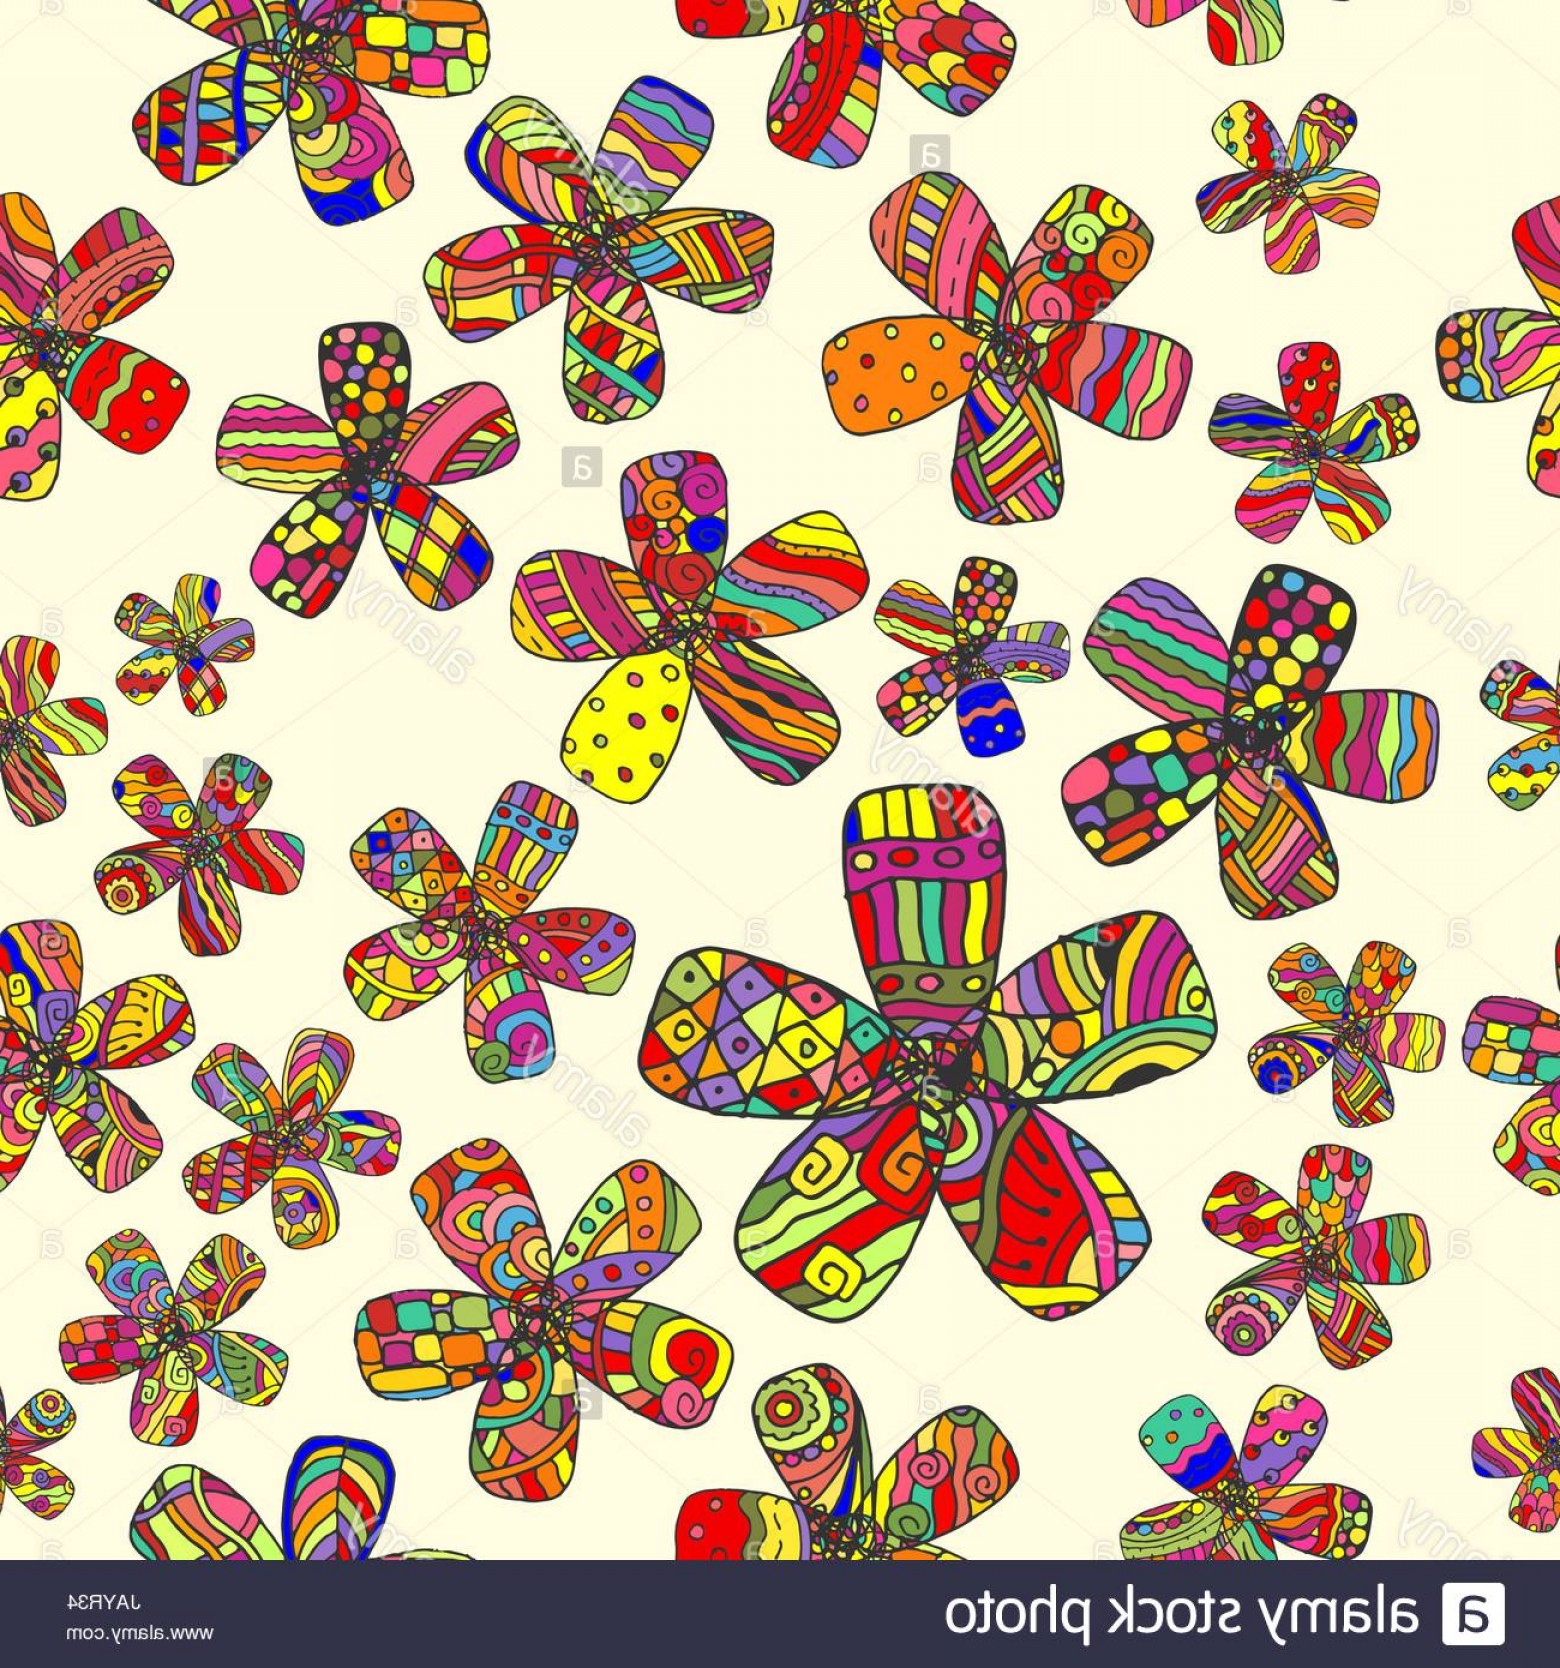 60s Vector: Stock Photo Vector Pattern S Seamless Background Inspired Flower Power Counterculture